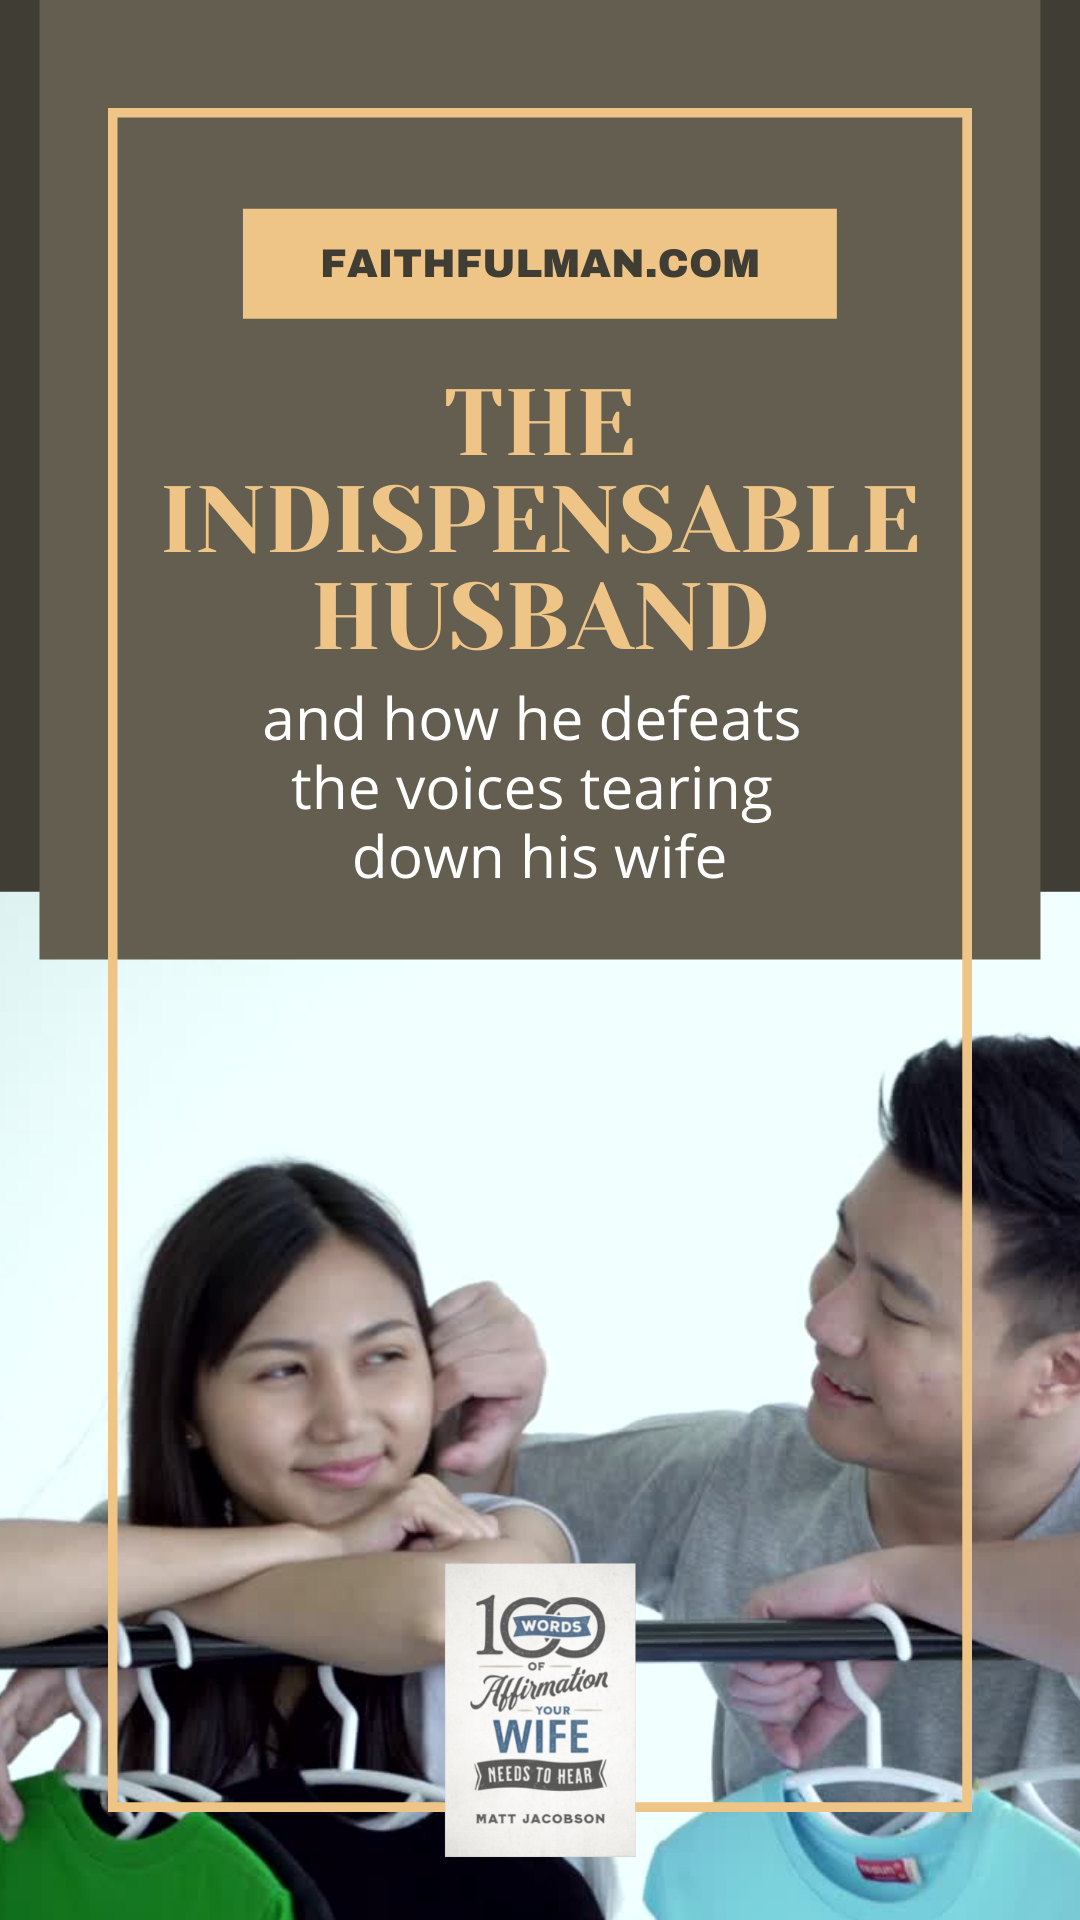 Your voice and influence in her heart is far more powerful than the world. Will you use it God's way and for her, be her 'Indispensable Husband'? via @faithful_man